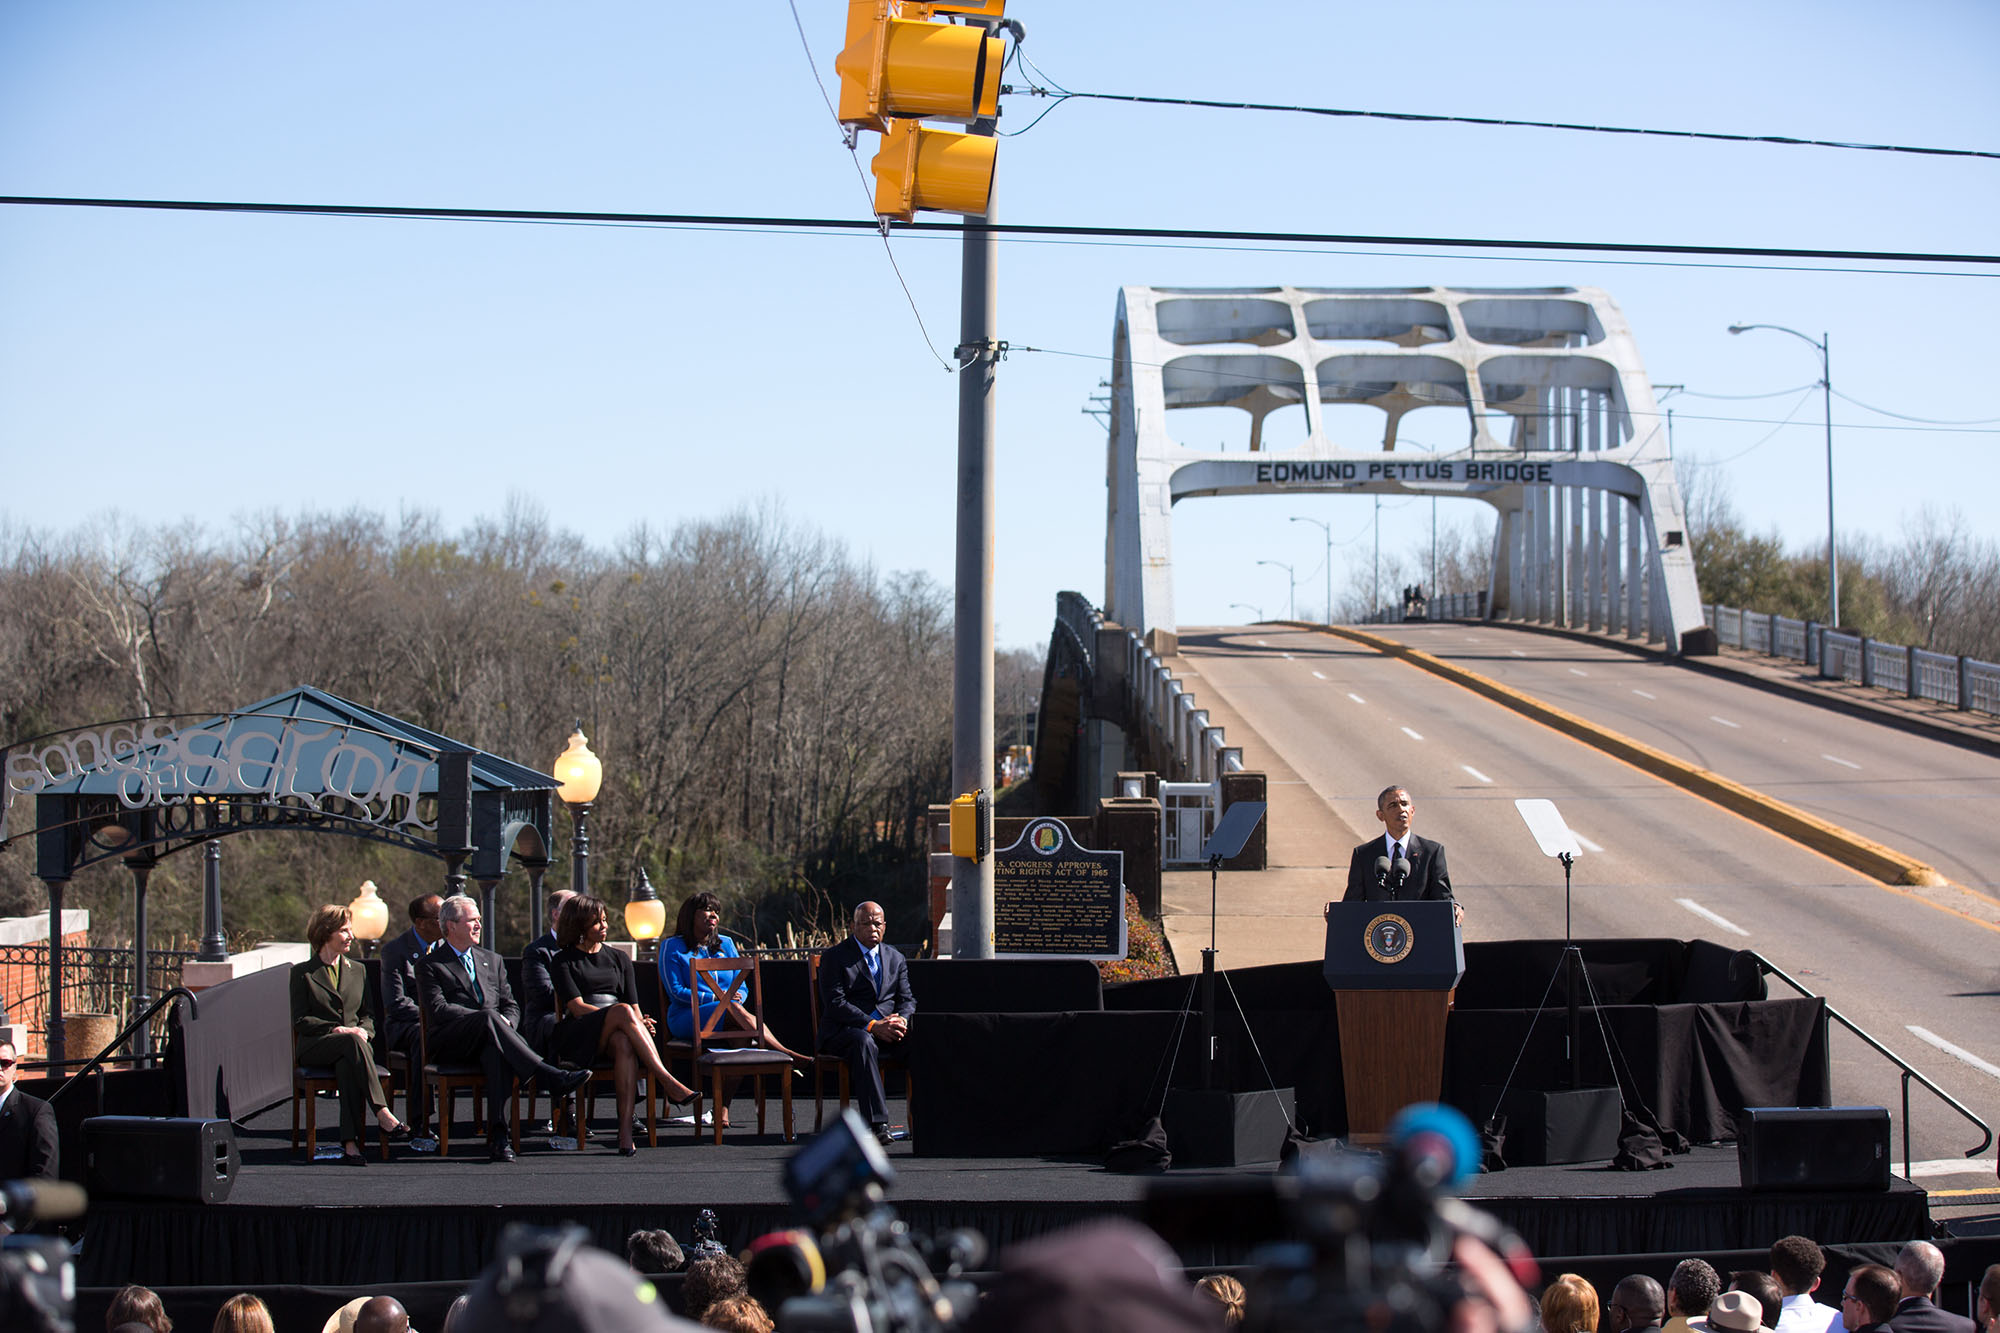 President Obama delivers remarks at the foot of the Edmund Pettus Bridge (Official White House Photo by Lawrence Jackson)